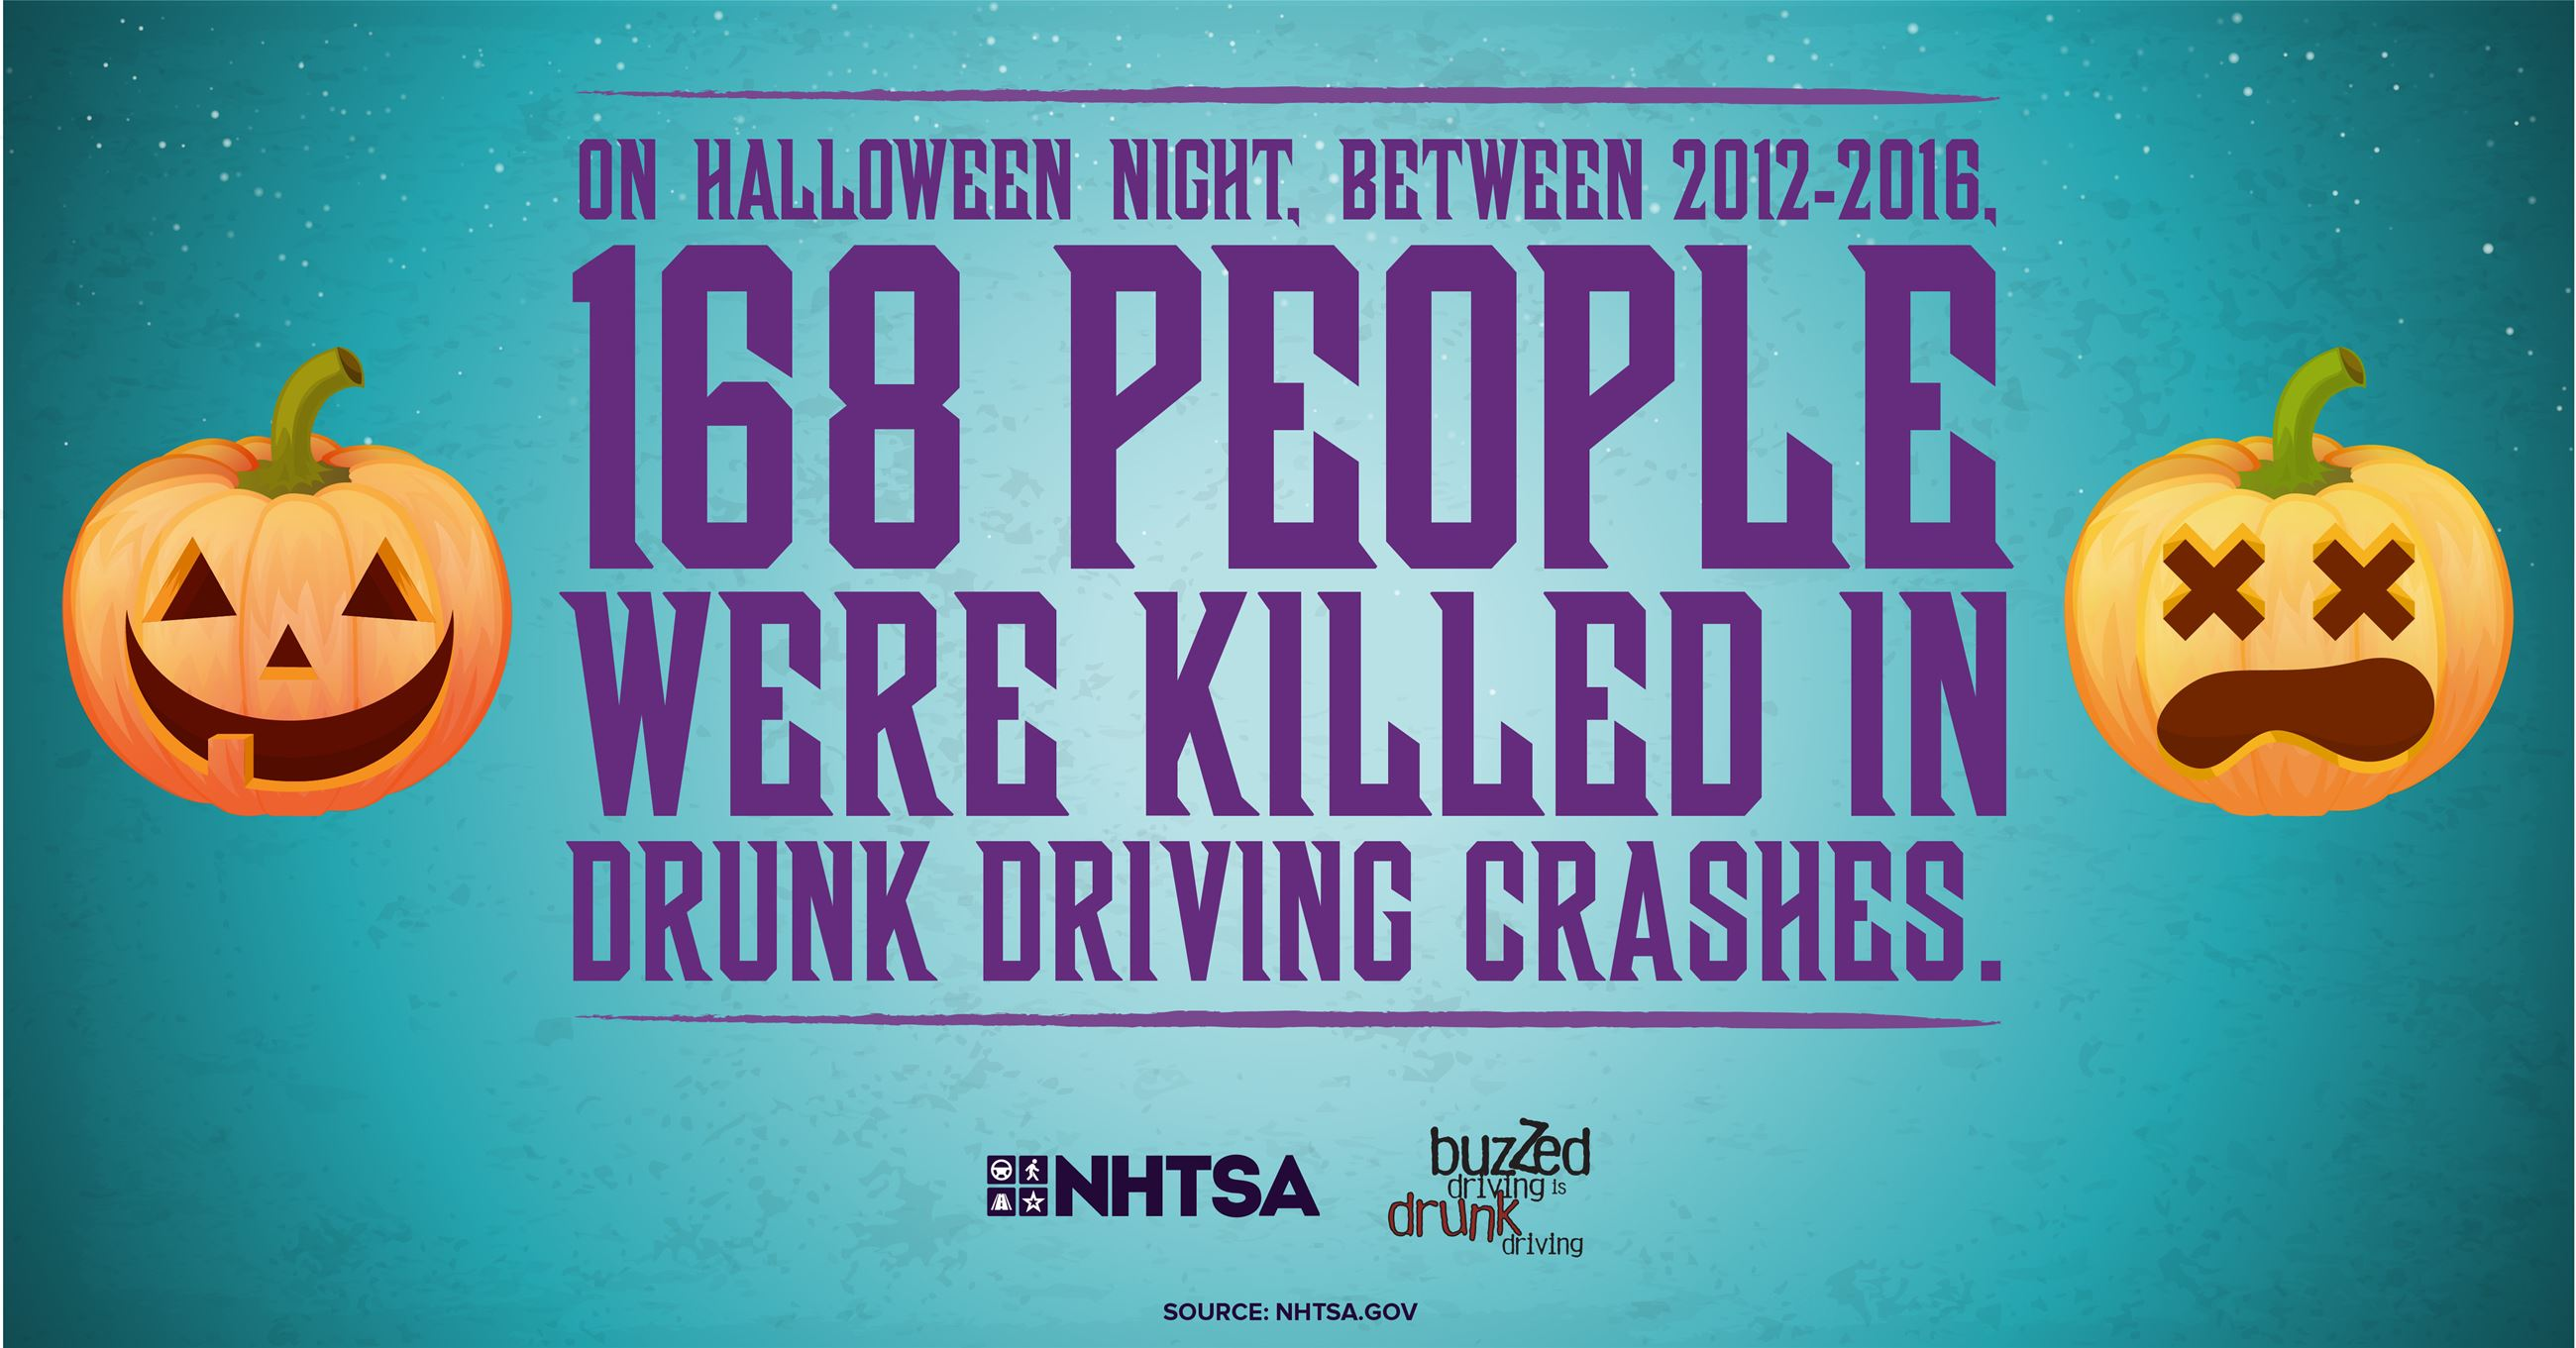 Halloween Safety _Buzzed driving